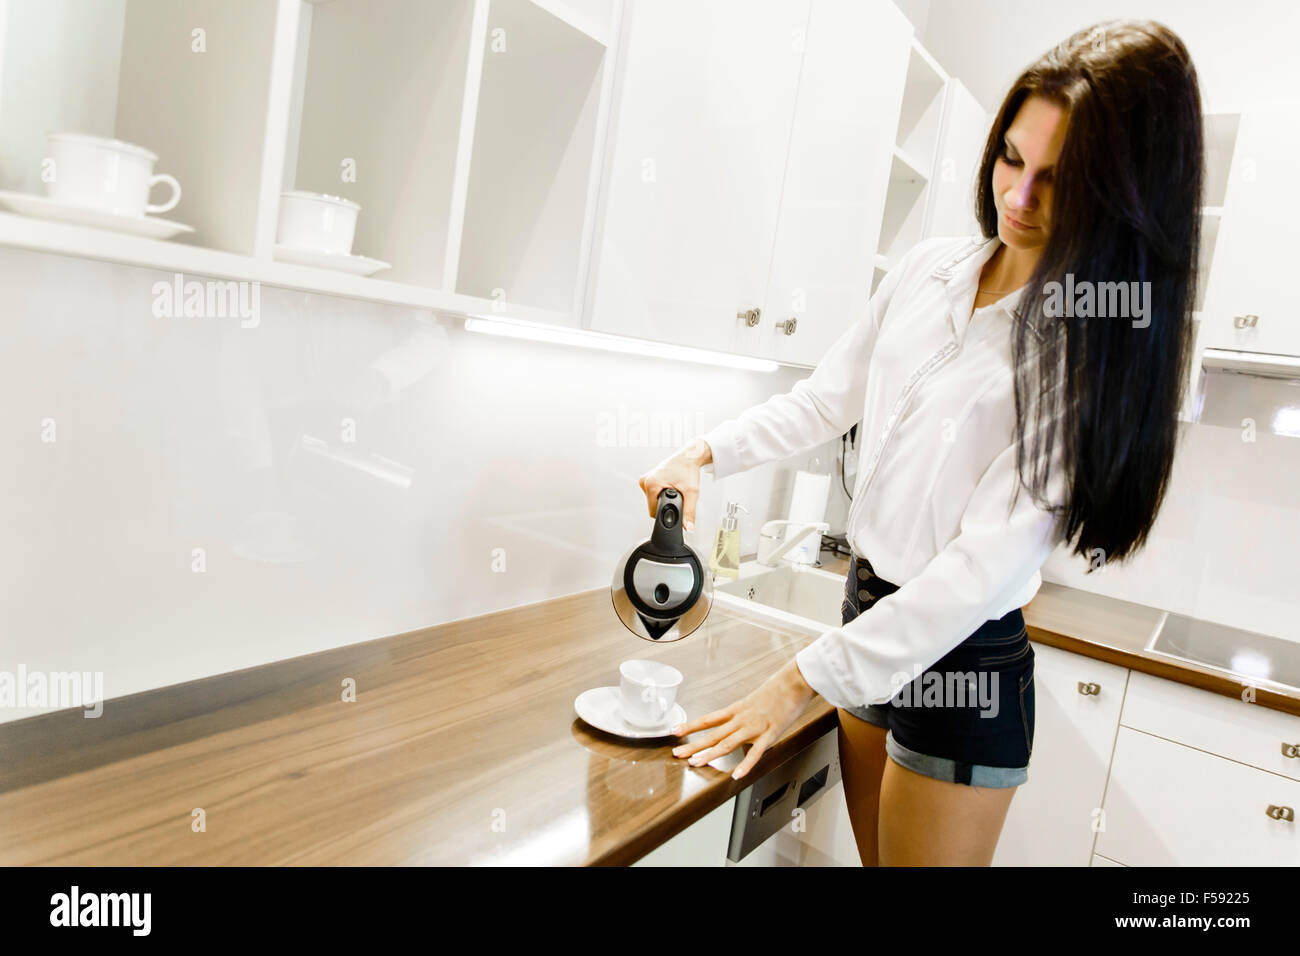 Closeup of hot water being poured out of the kettle in a modern kitchen - Stock Image